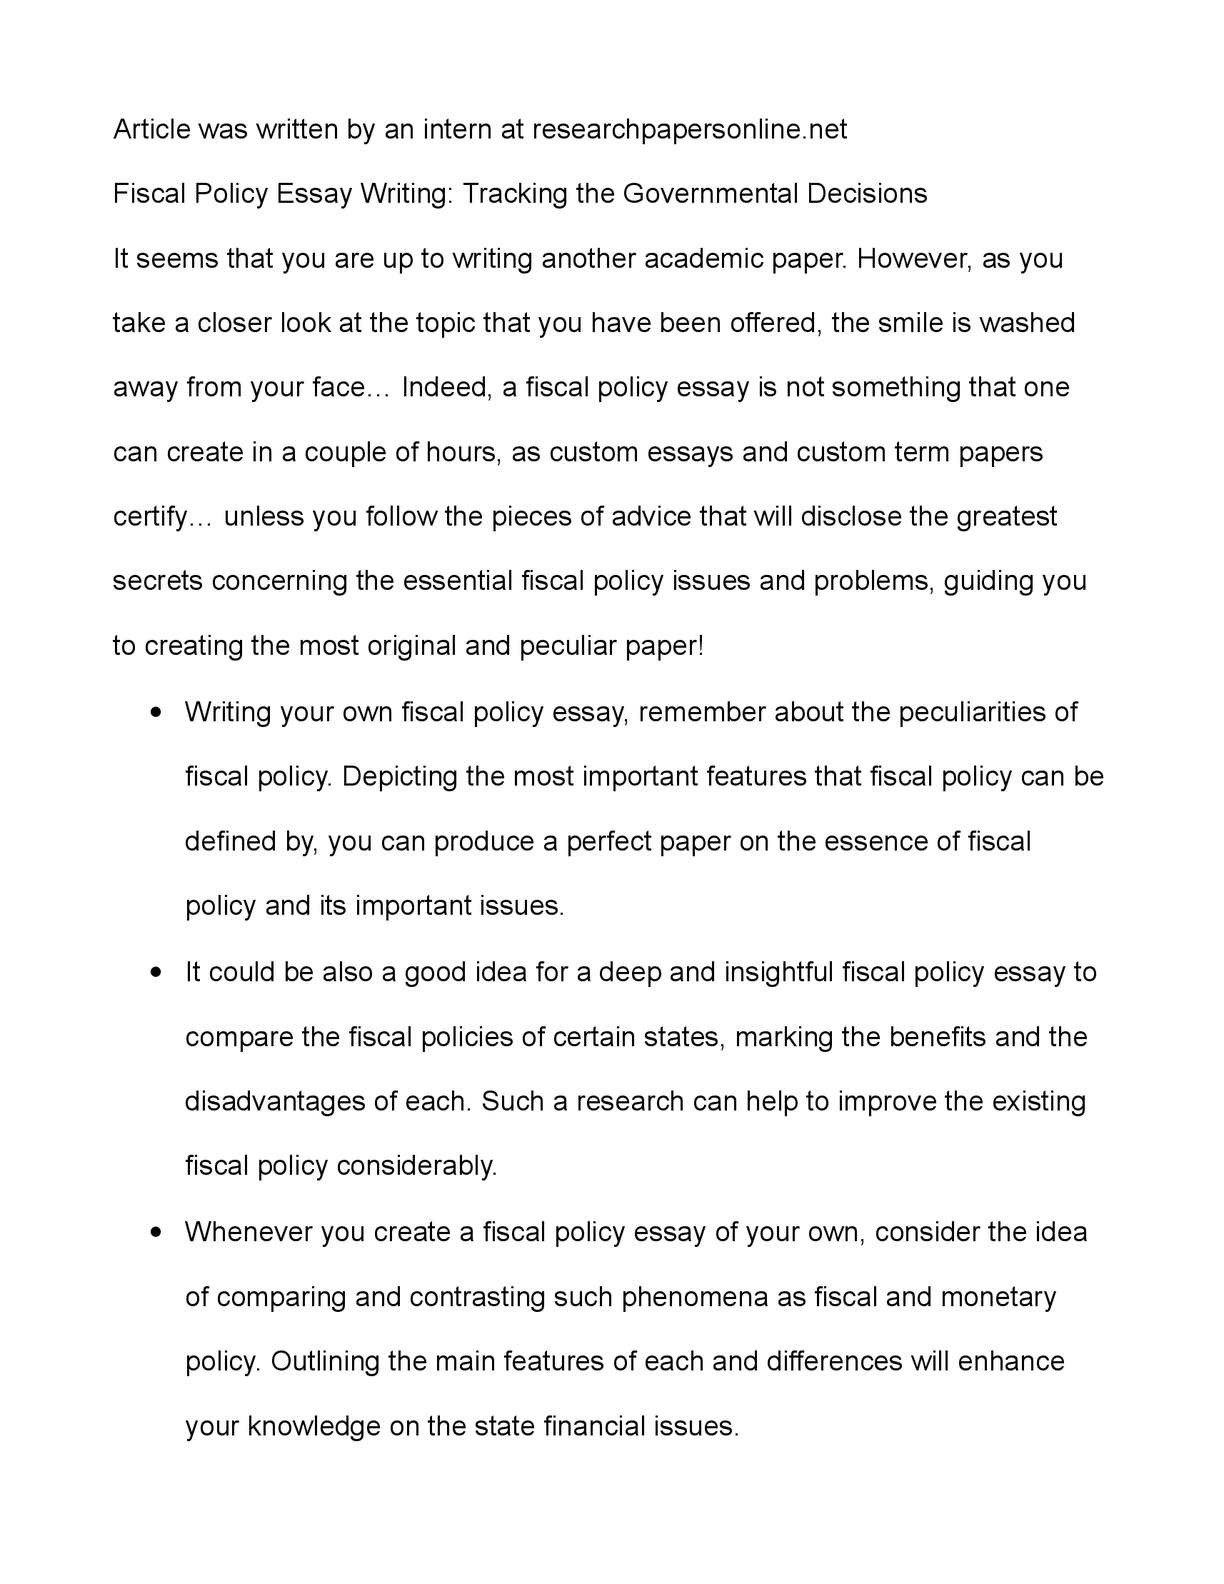 Calamo  Fiscal Policy Essay Writing Tracking The Governmental  Calamo  Fiscal Policy Essay Writing Tracking The Governmental Decisions